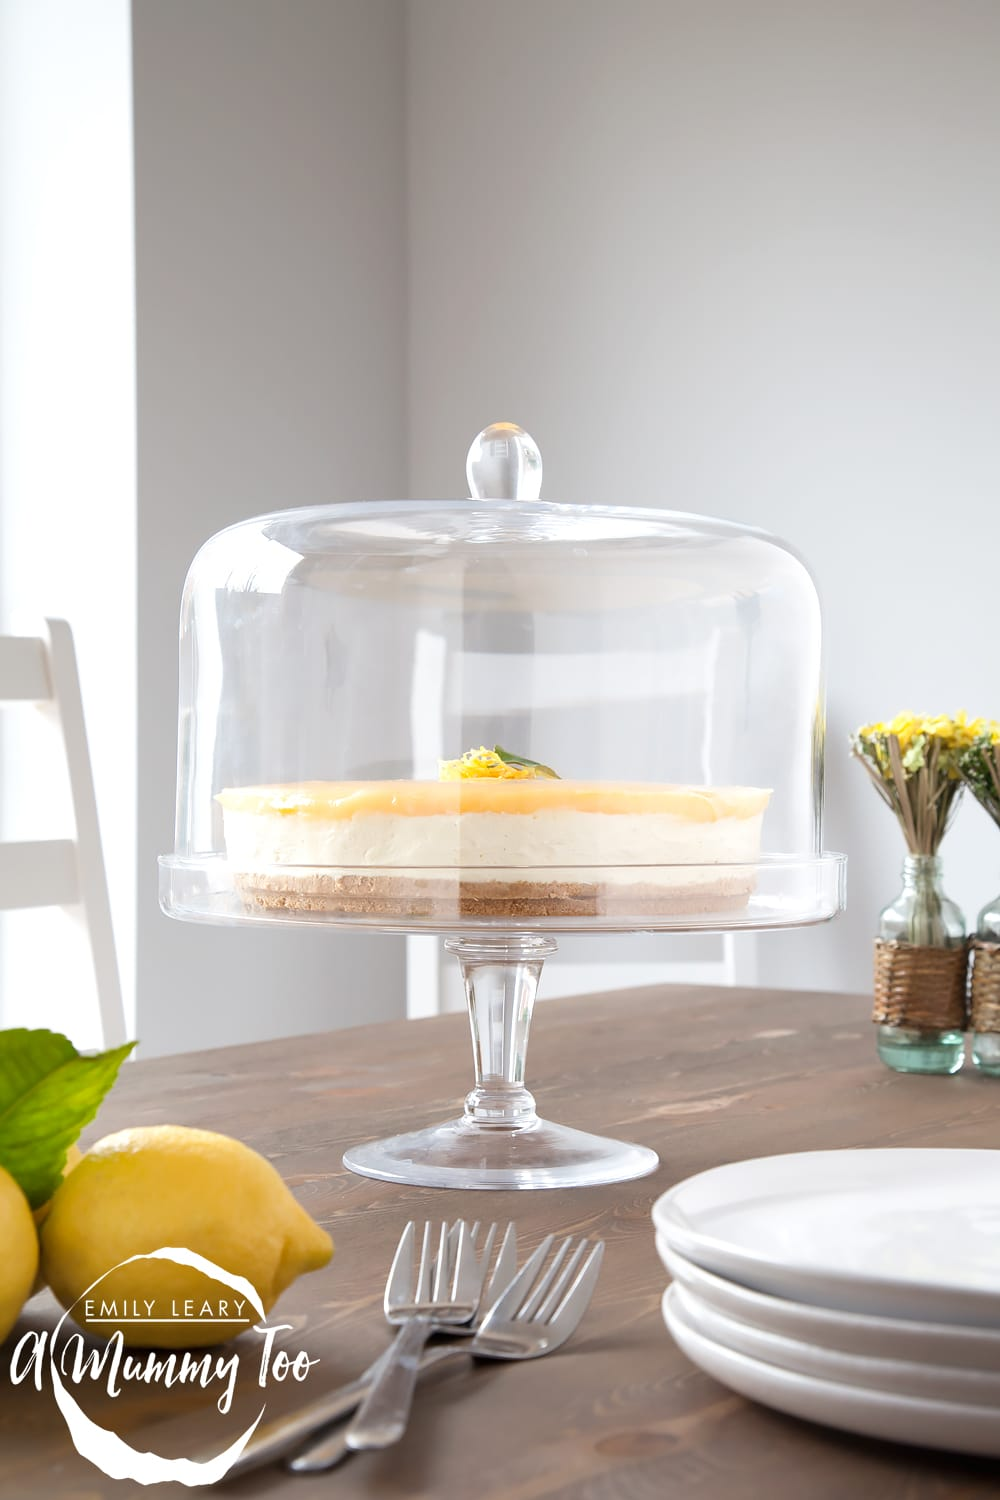 No-bake lemon curd and white chocolate cheesecake in a glass stand on a wooden table.